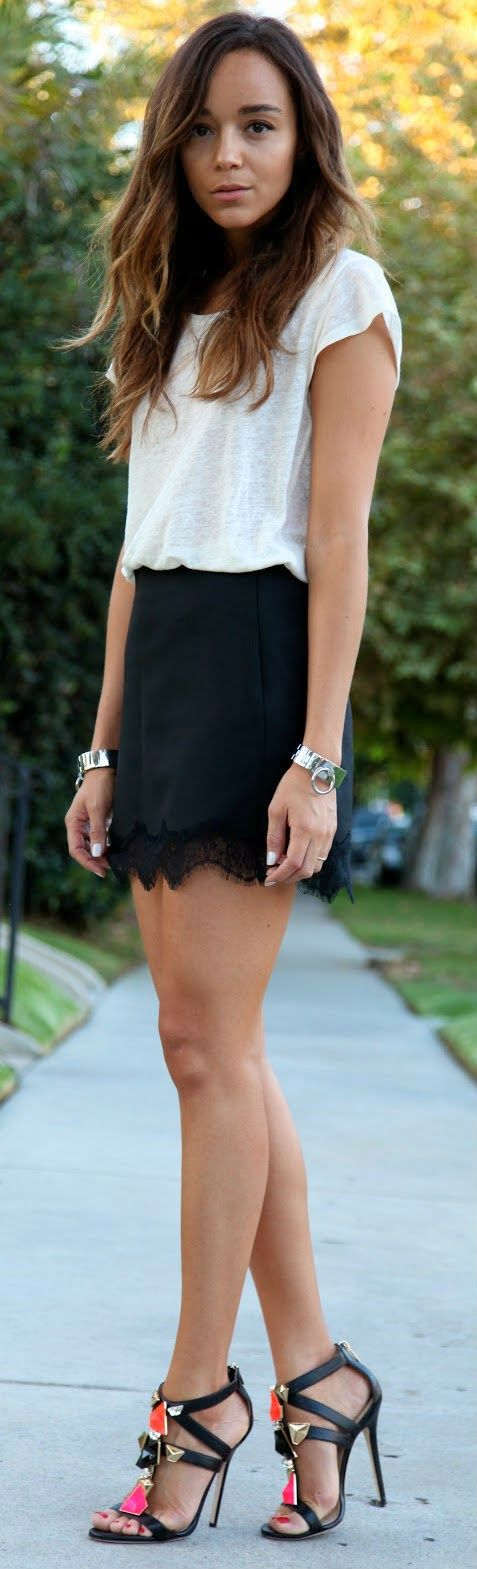 Love this look, simple black & white.